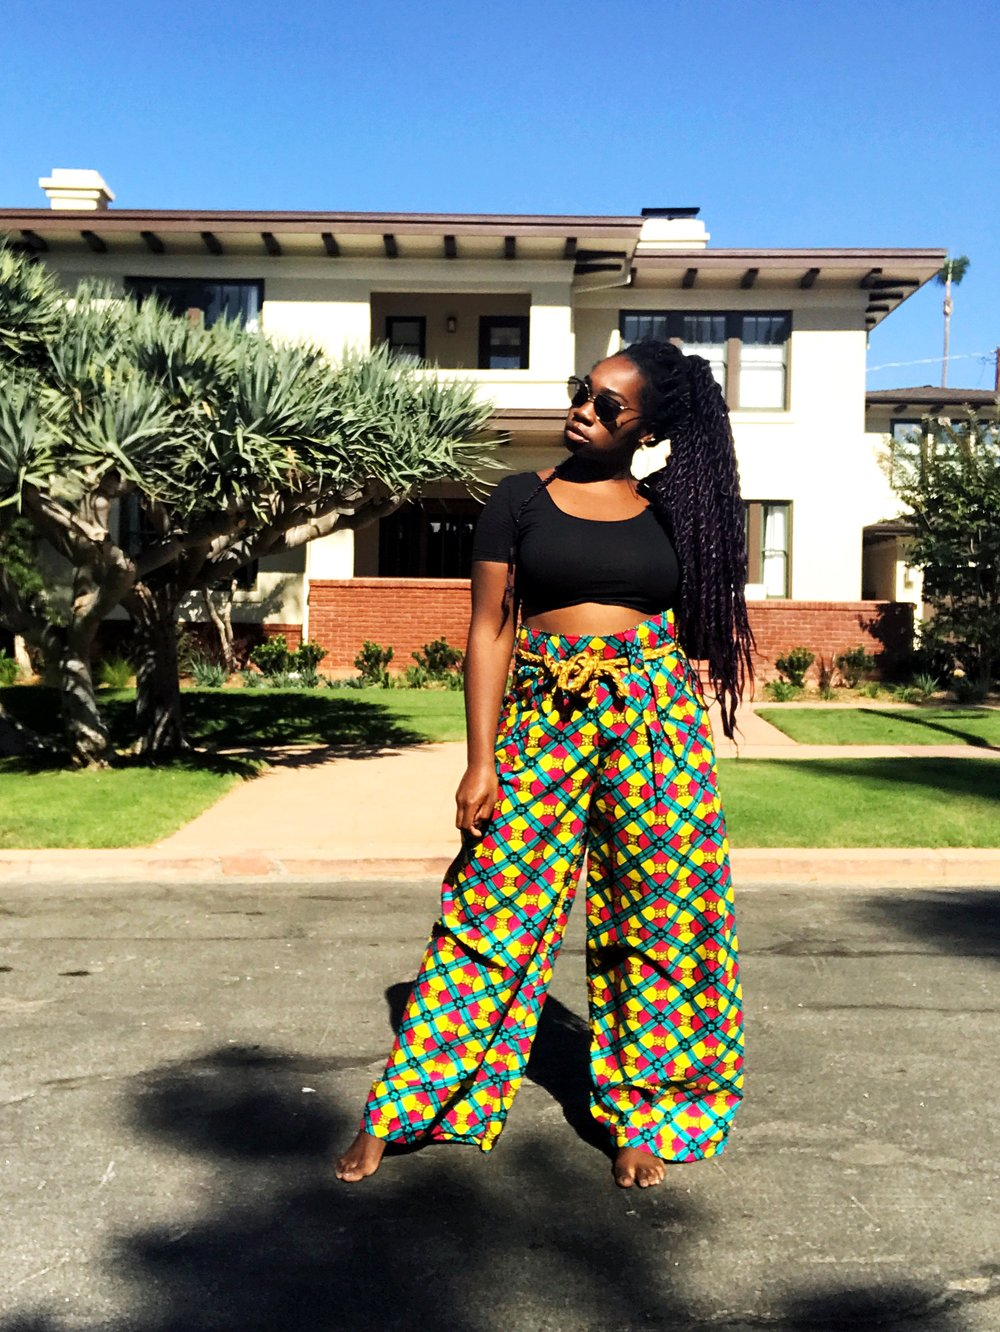 Femi wearing African print wide leg pants and black crop top standing in the street